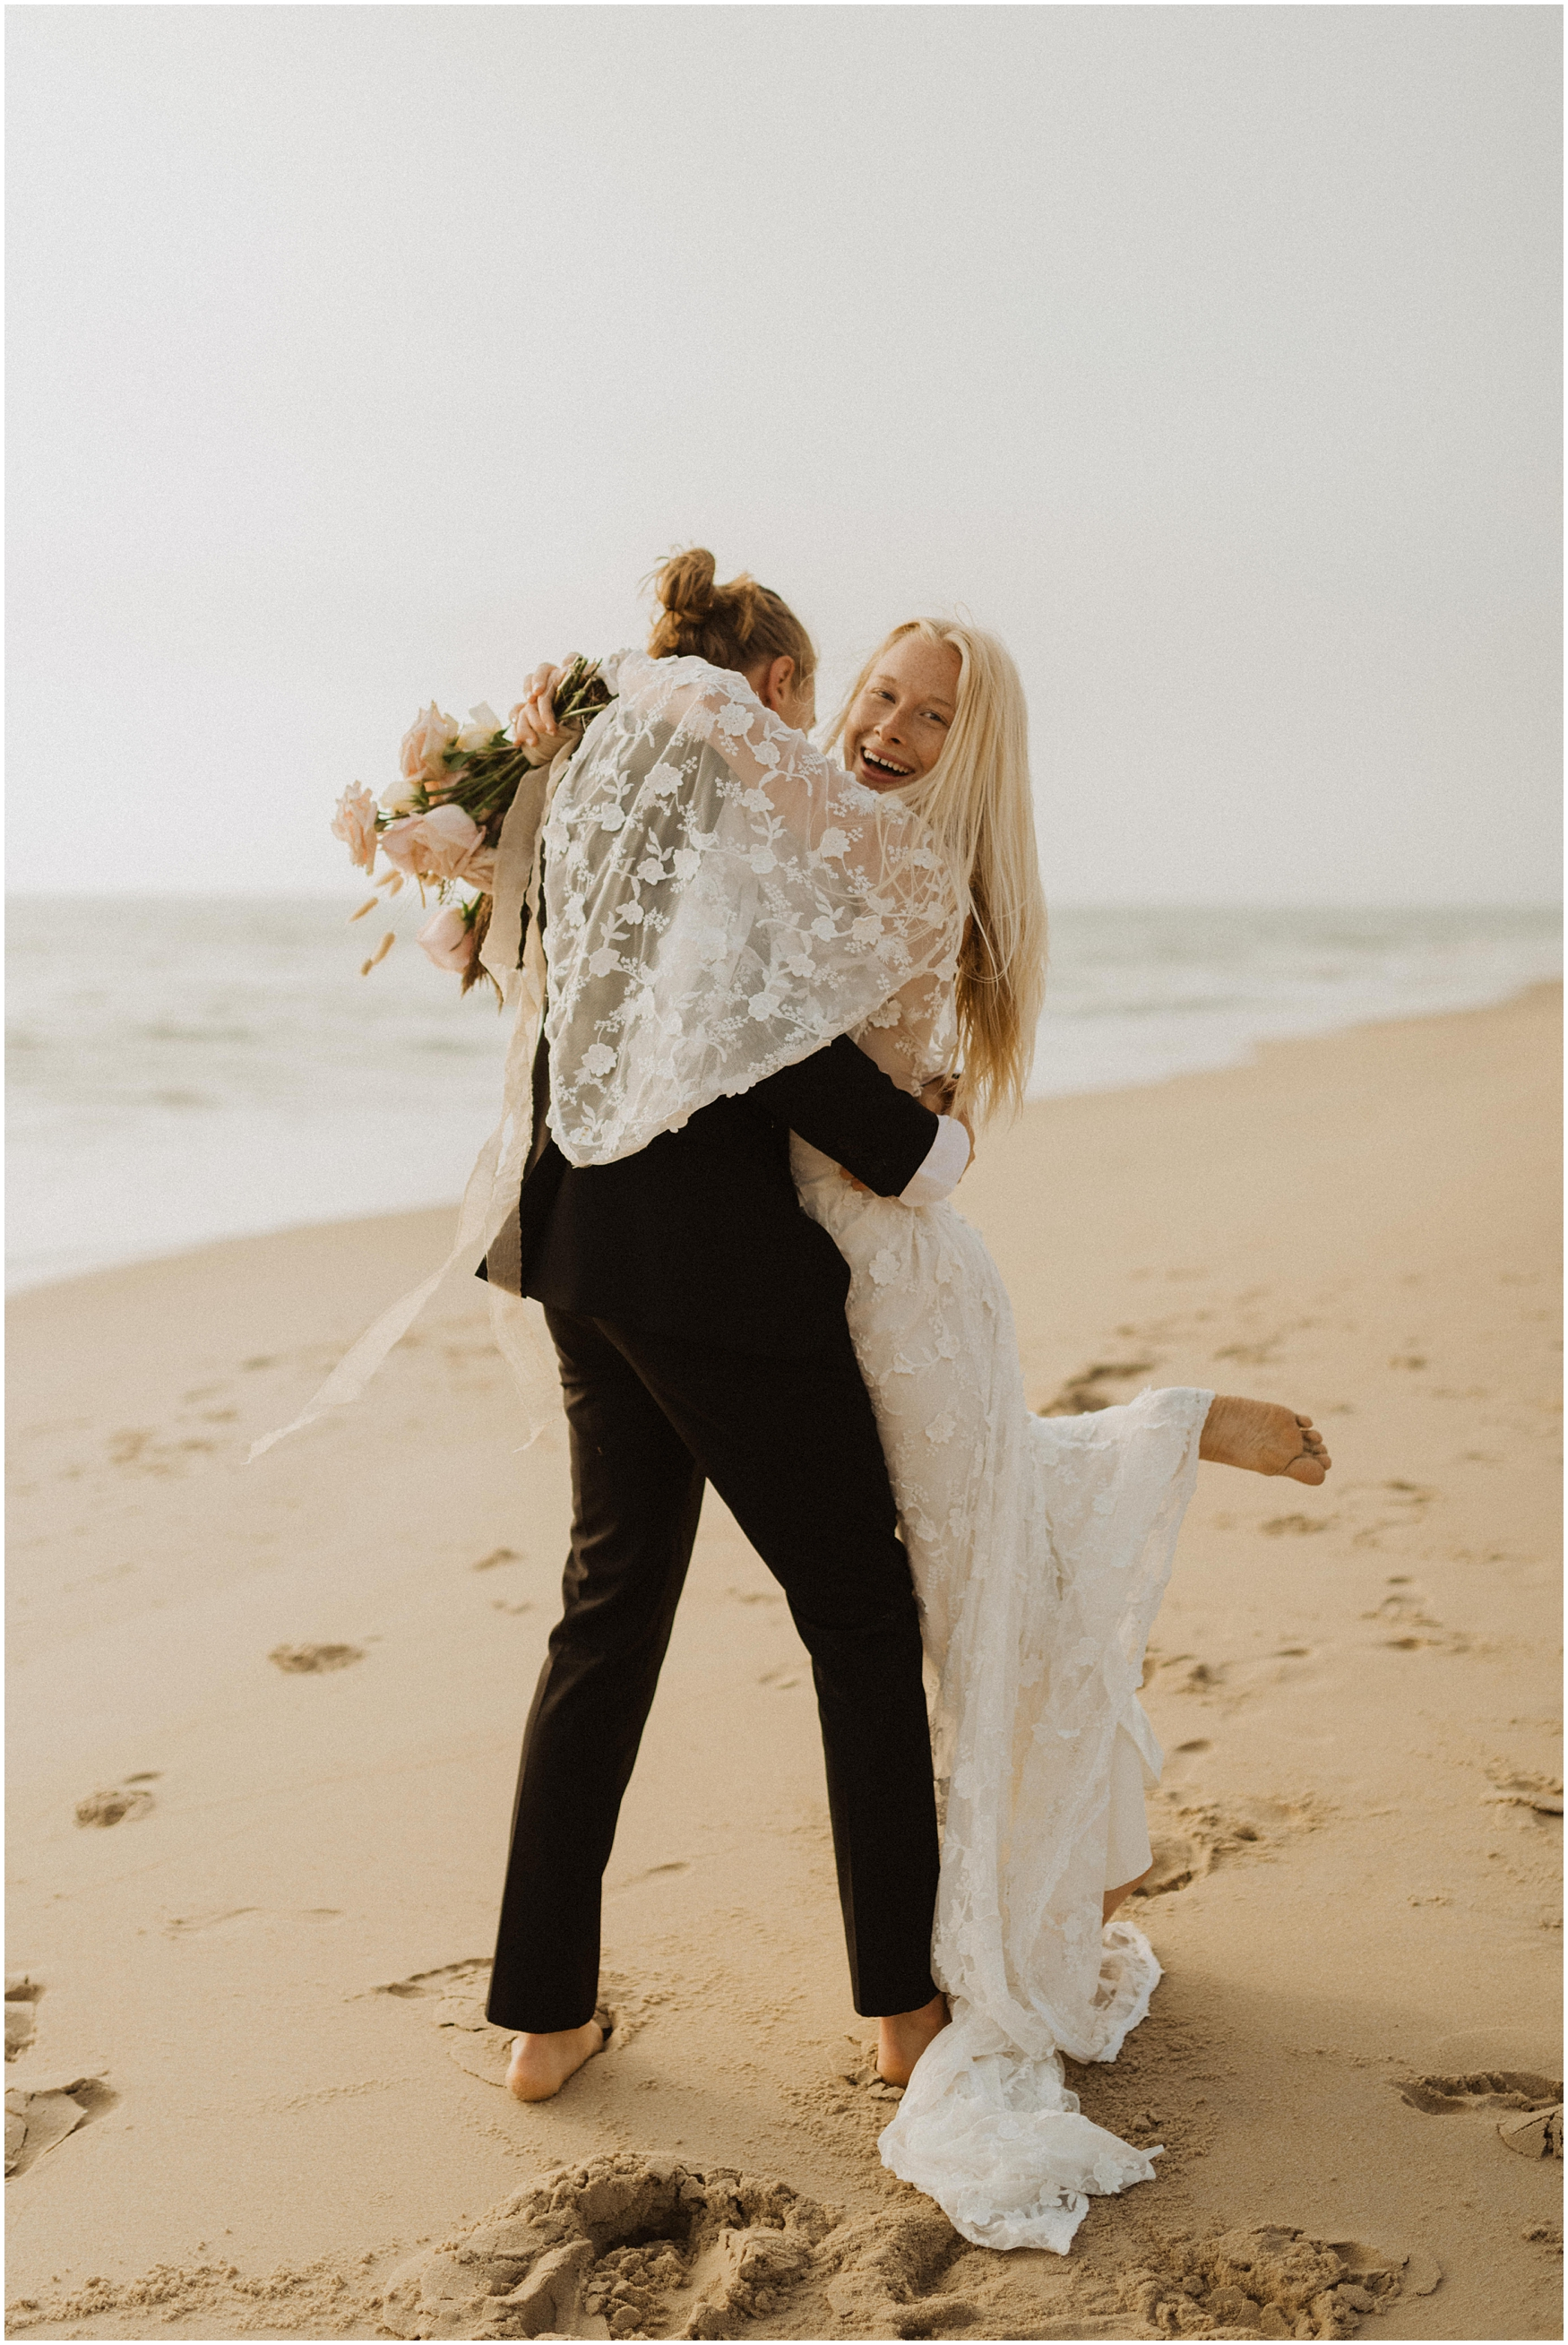 Hannah_Baldwin_Photography_Virginia_Beach_Elopement_Sunrise_0188.jpg